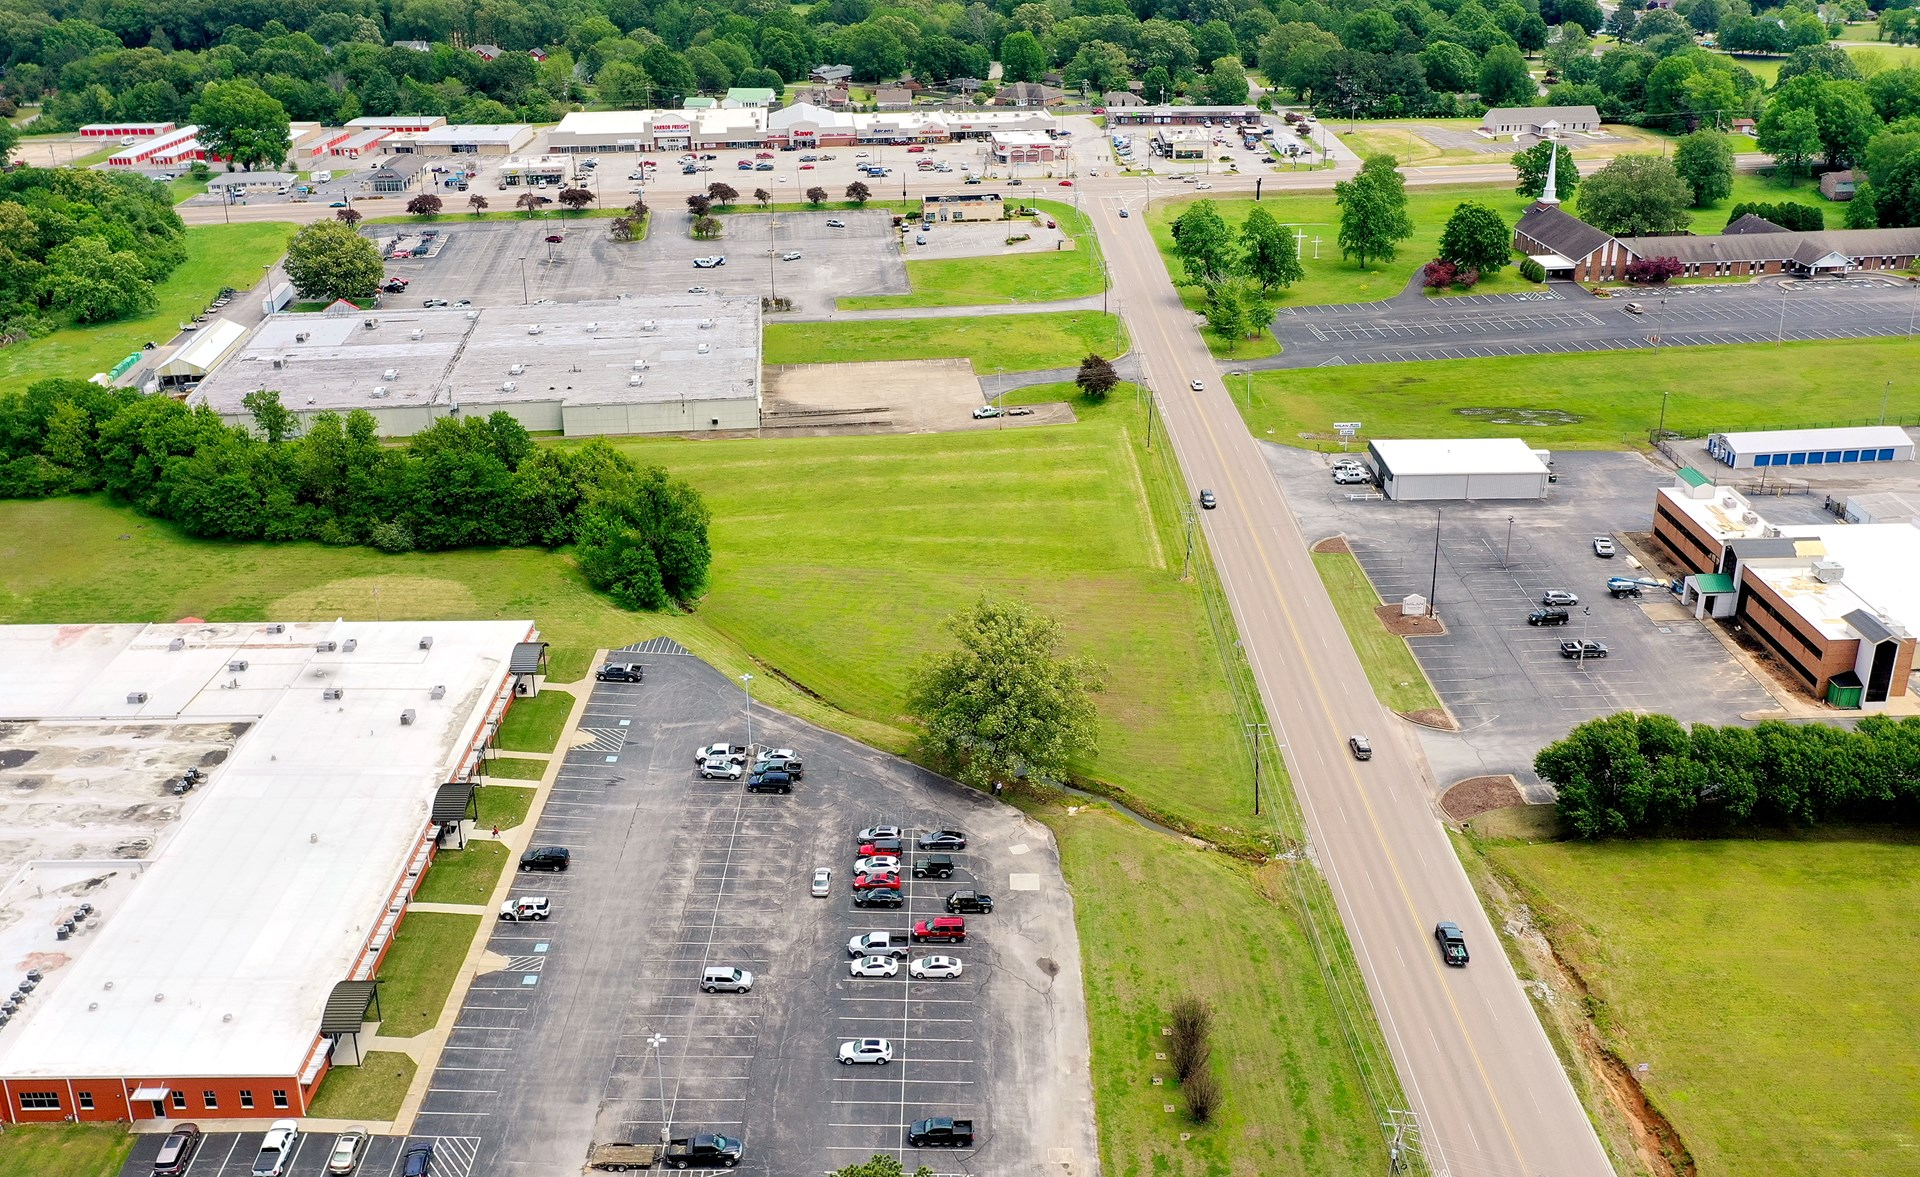 Prime Commercial Lot For Sale in The Heart of Town Milan, TN